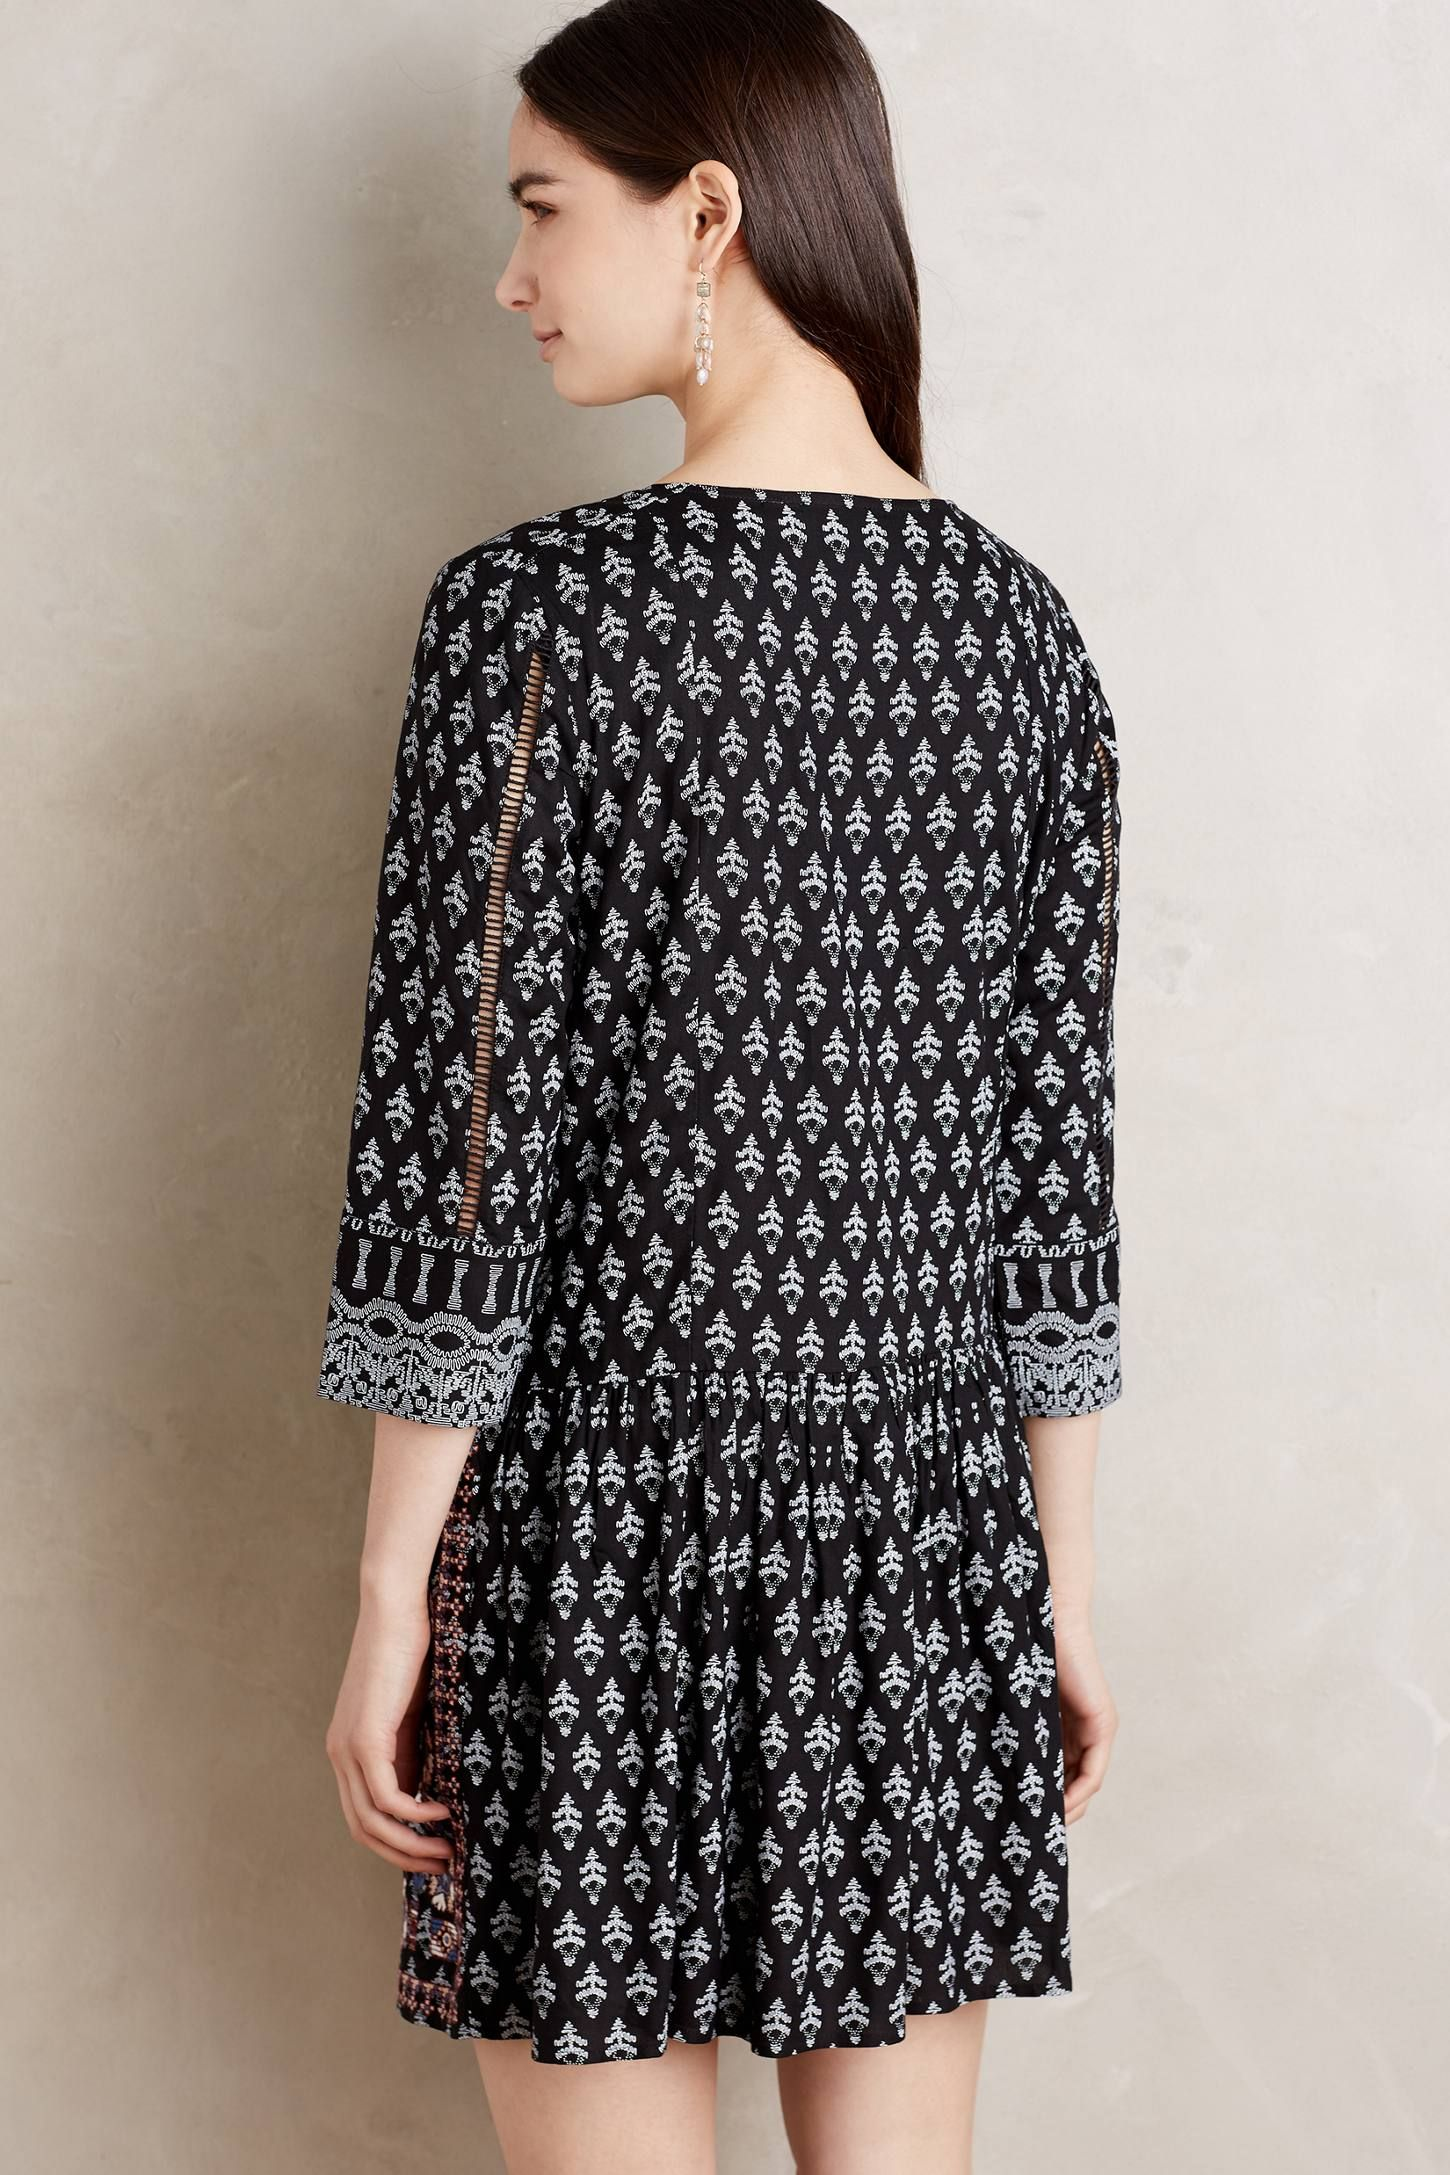 Caria Shirtdress - anthropologie.com